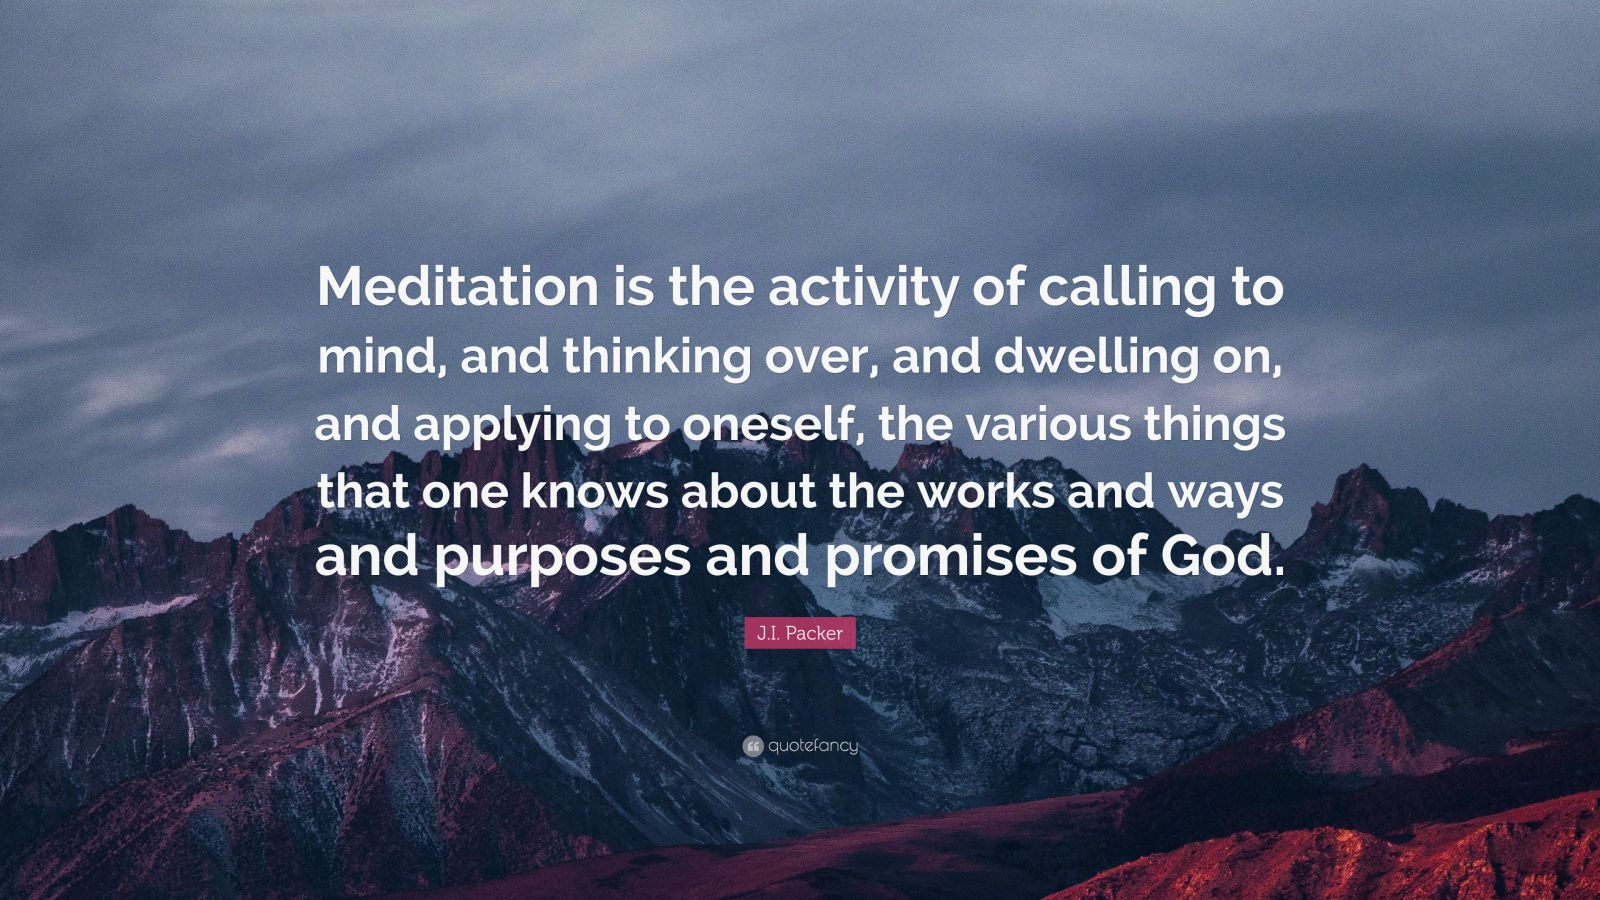 "J.I. Packer Quote: ""Meditation is the activity of calling to mind, and thinking over, and dwelling on, and applying to oneself, the various things that one knows about the works and ways and purposes and promises of God."""